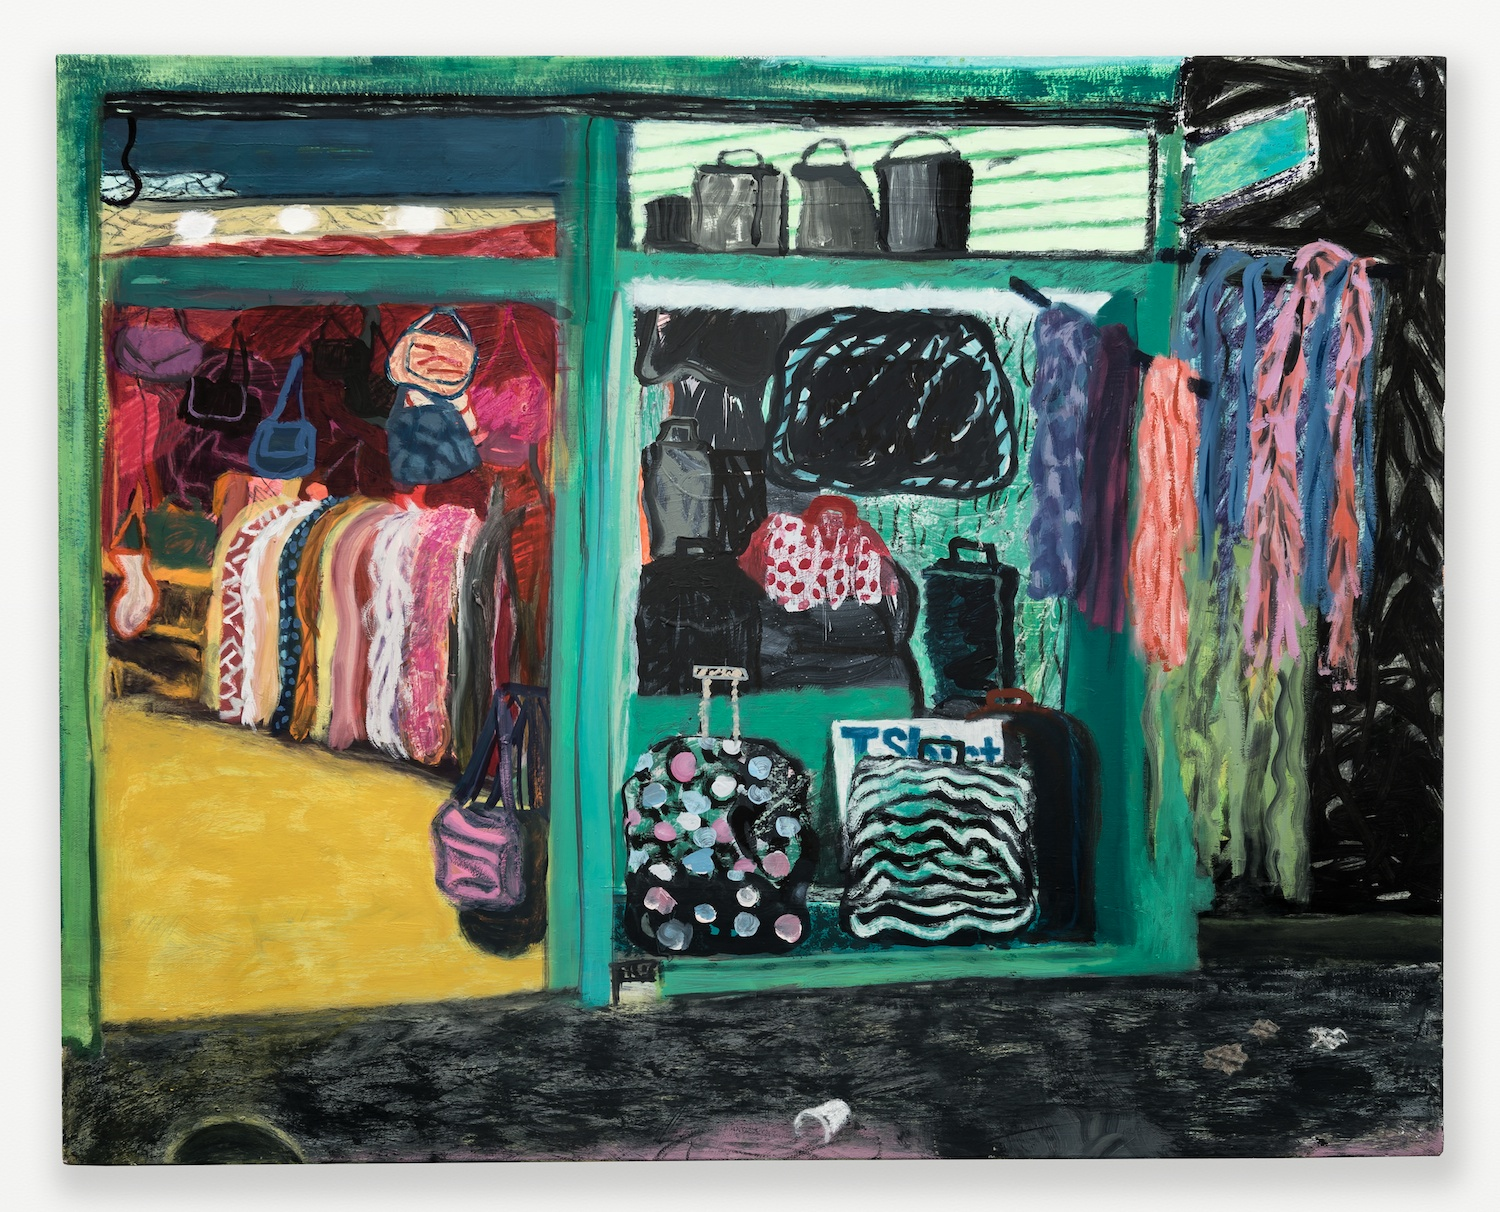 Tyson Reeder  Canal St.  2012 Oil, acrylic, and gouache on canvas 24h x 30w in TR003